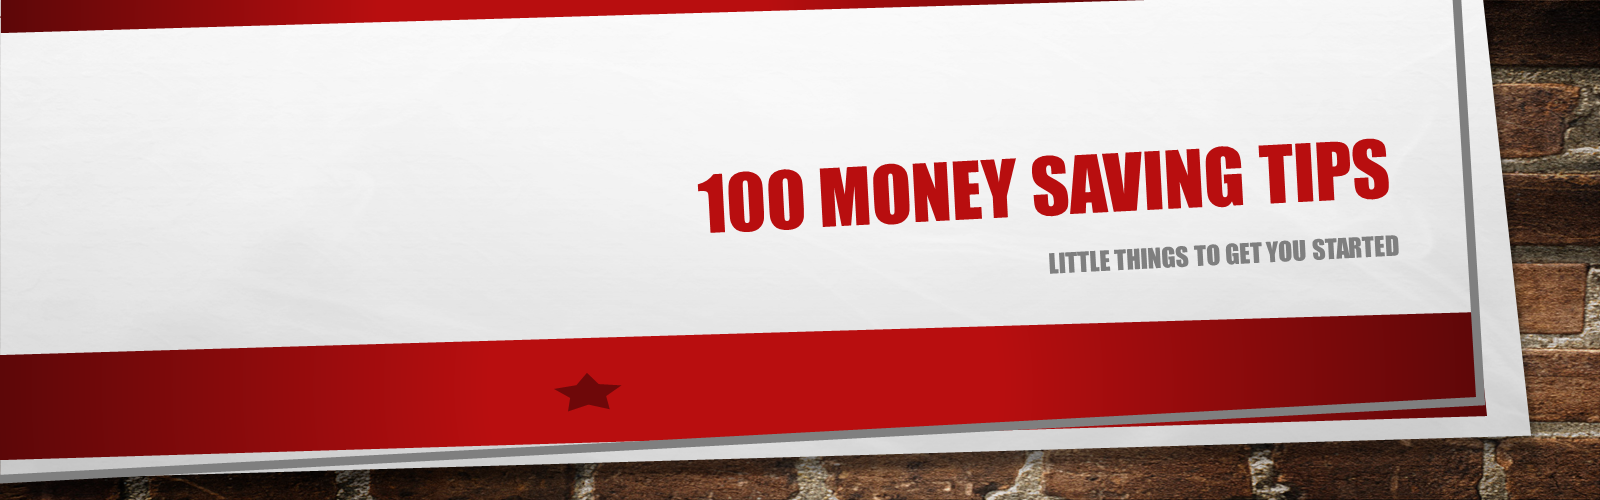 100 money savings tips